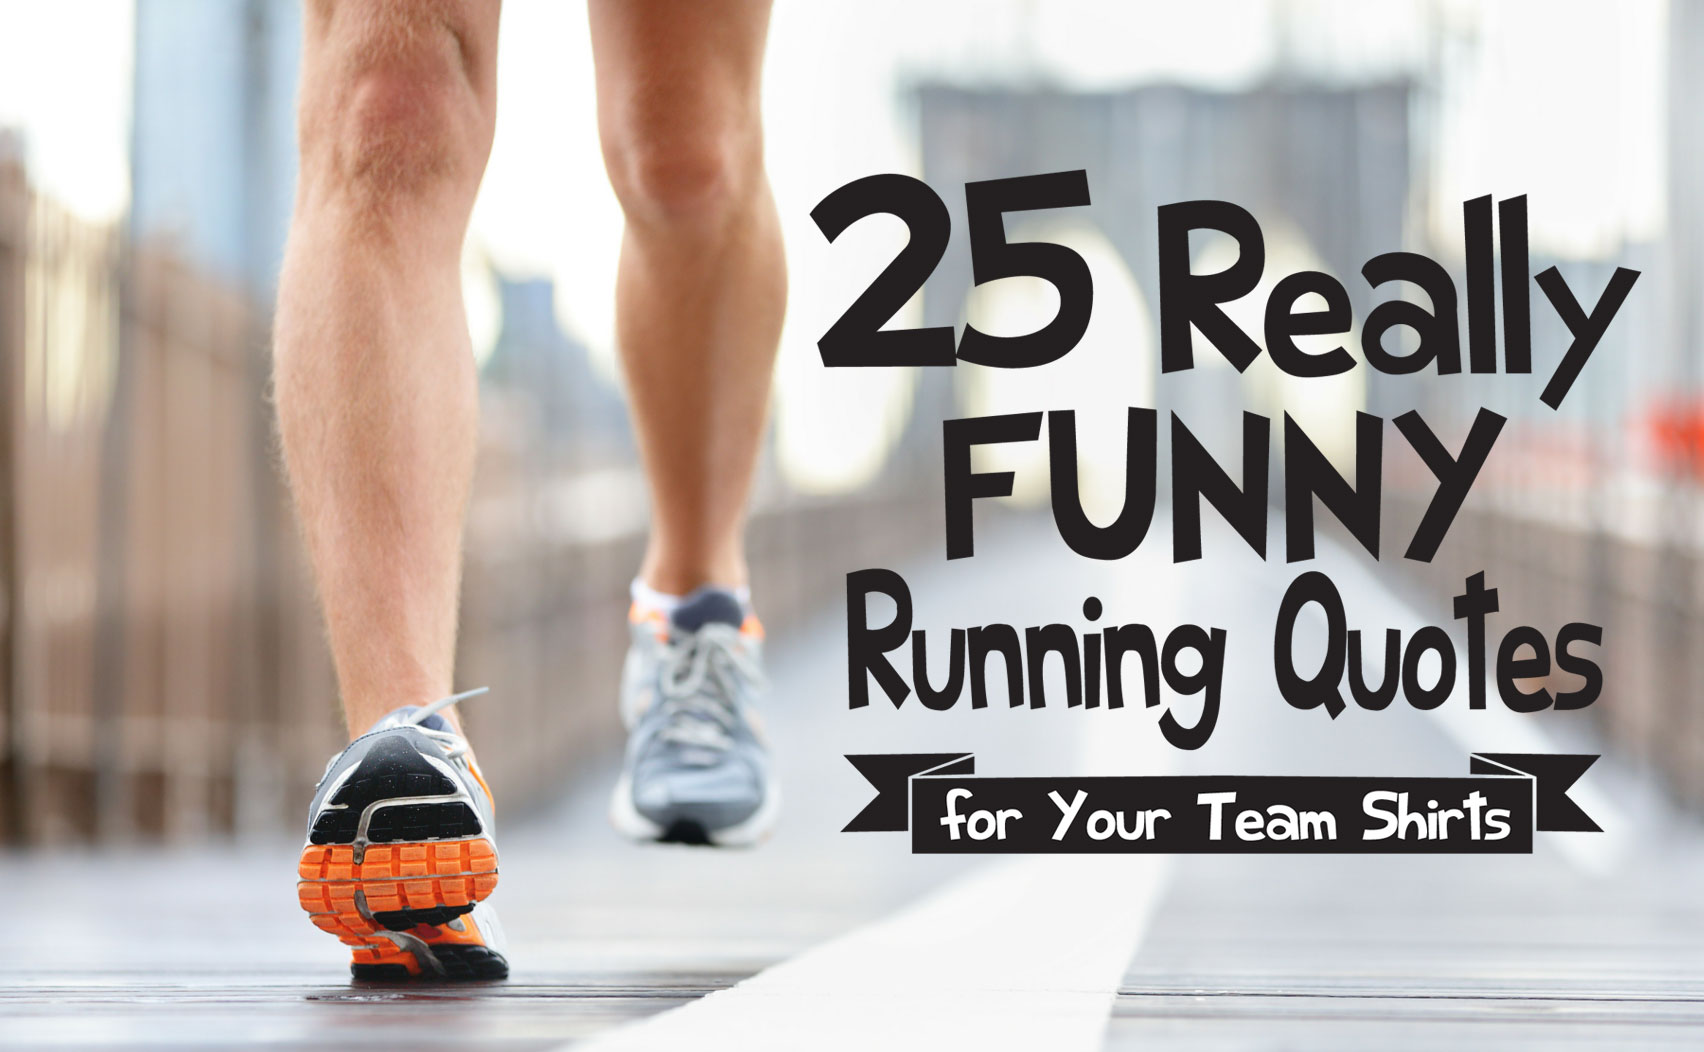 25 Really Funny Running Quotes for Your Team